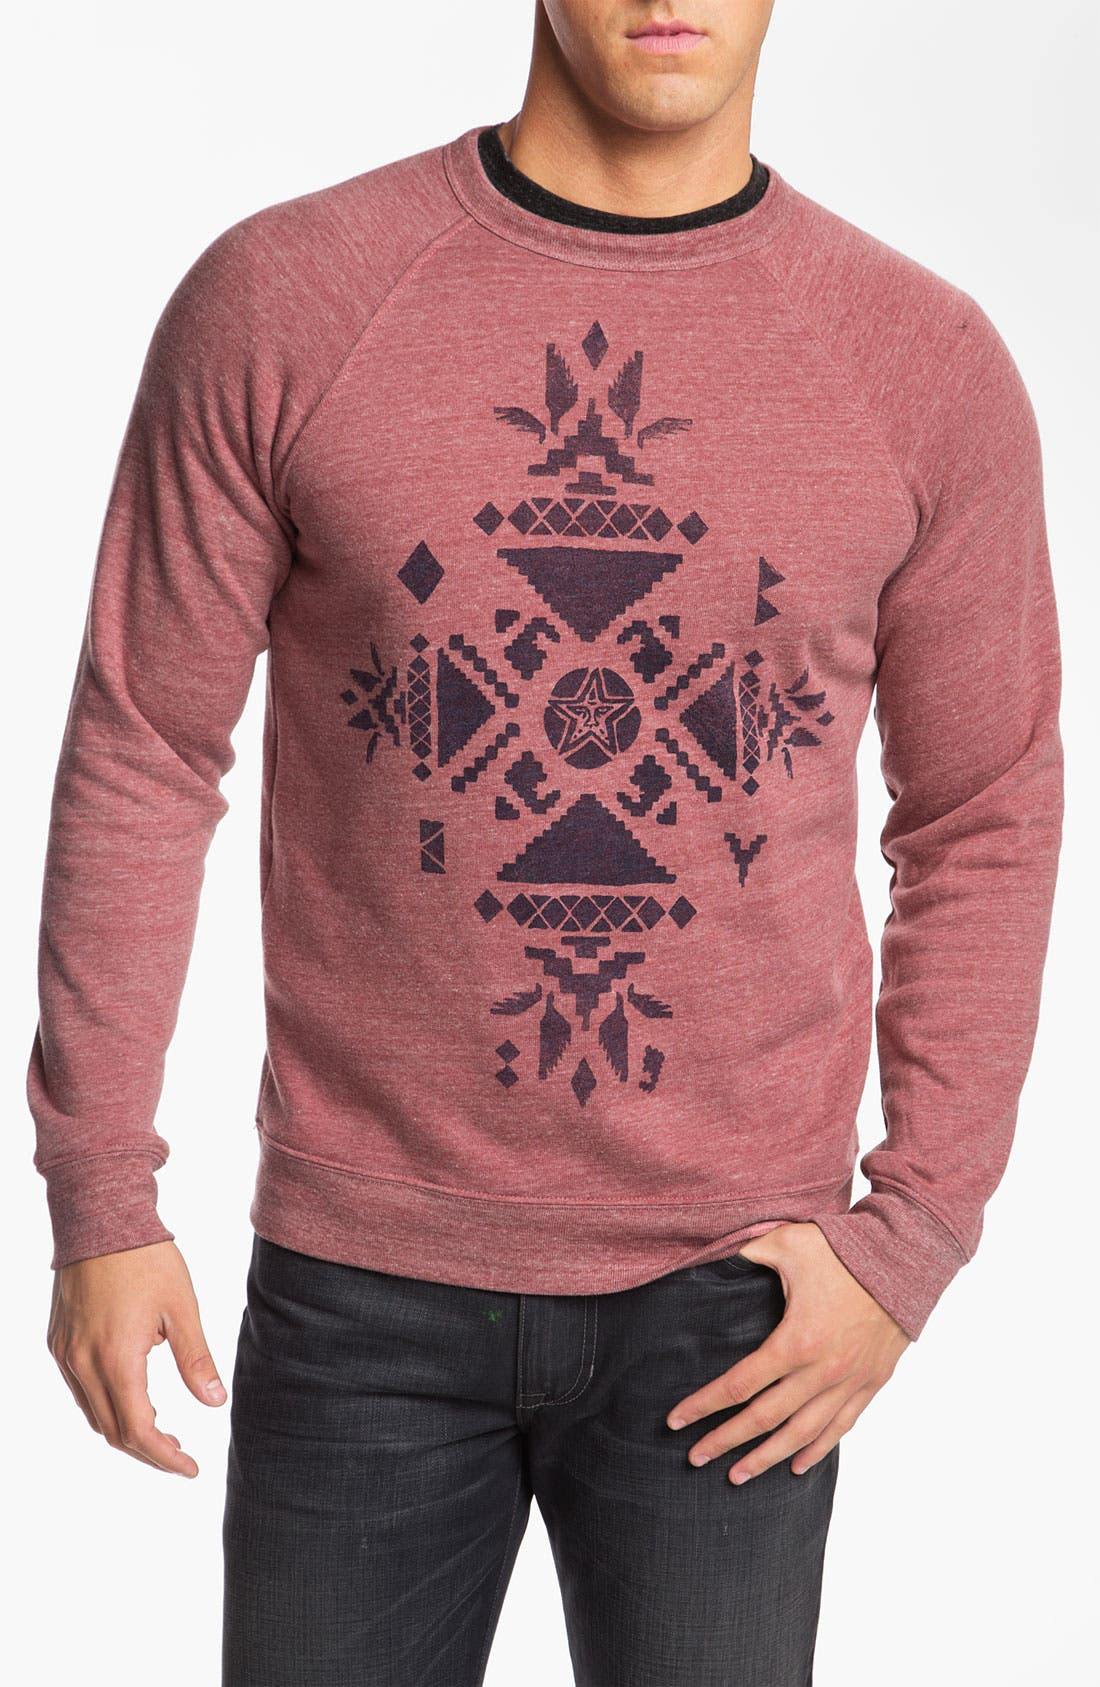 Main Image - Obey 'Desert Star' Graphic Crewneck Sweatshirt